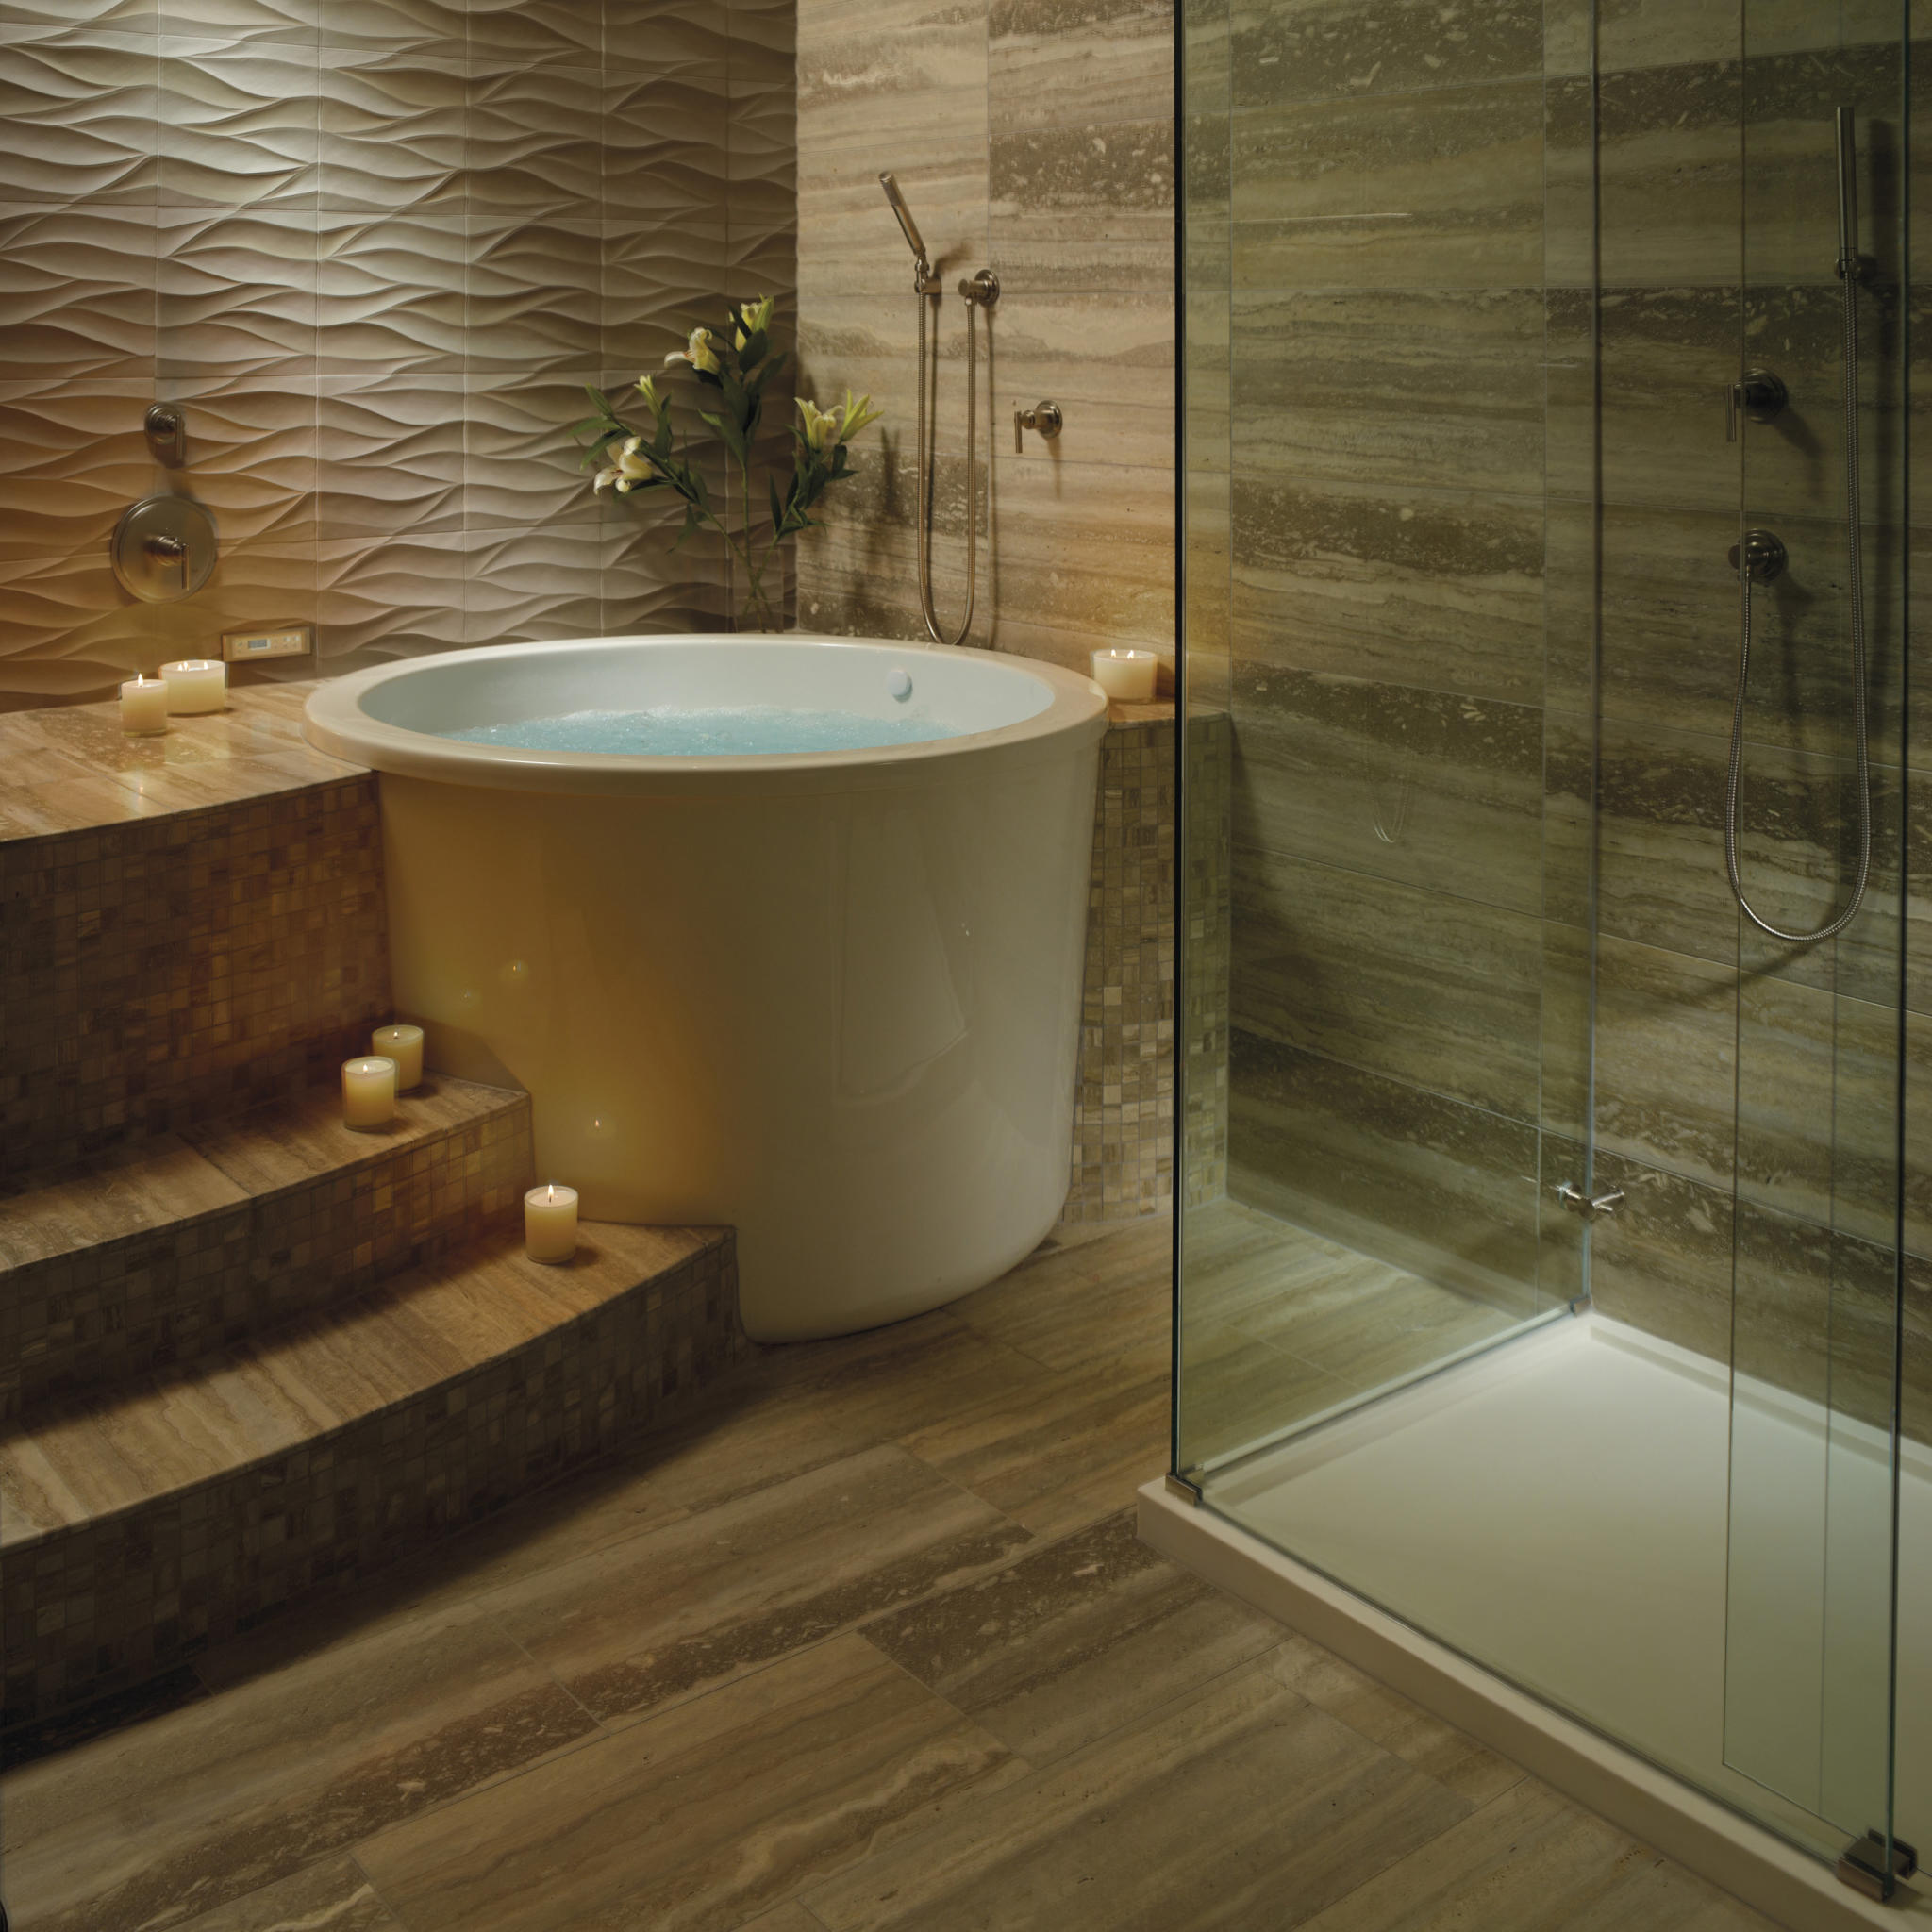 Compact comfort the japanese tub abode for Bathroom ideas with soaker tubs